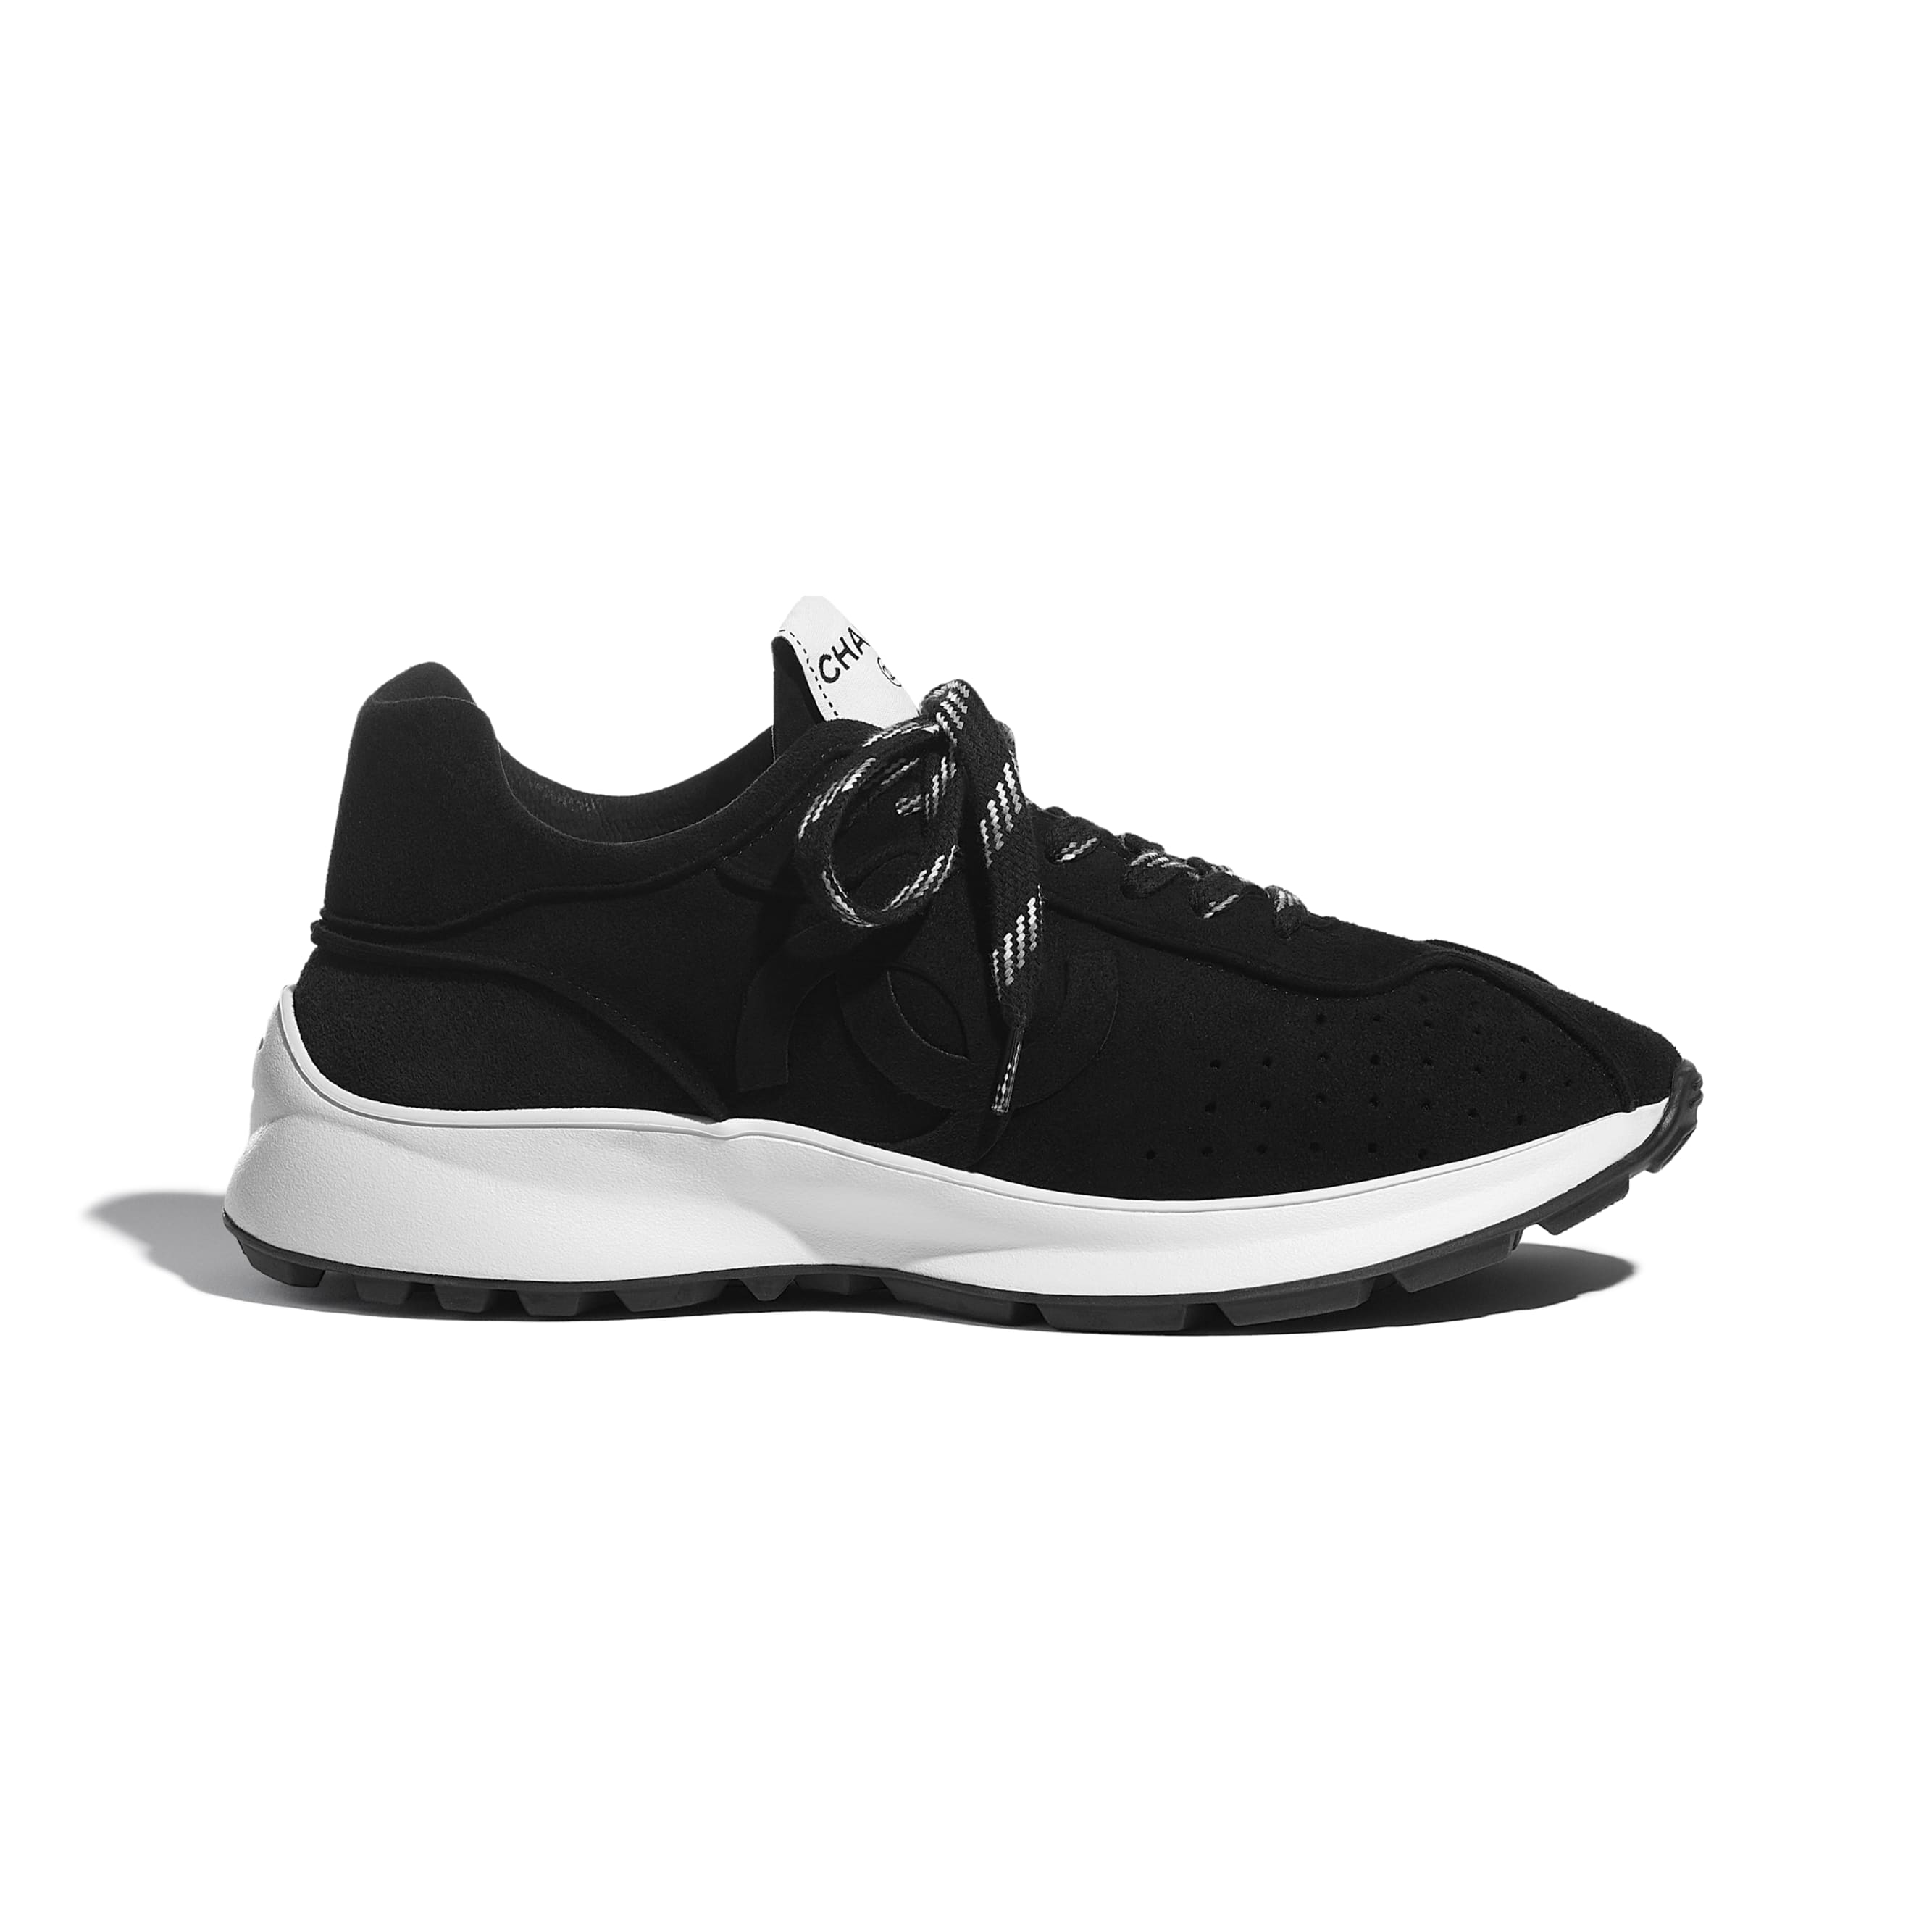 Trainers - Black - Suede Goatskin - CHANEL - Default view - see standard sized version